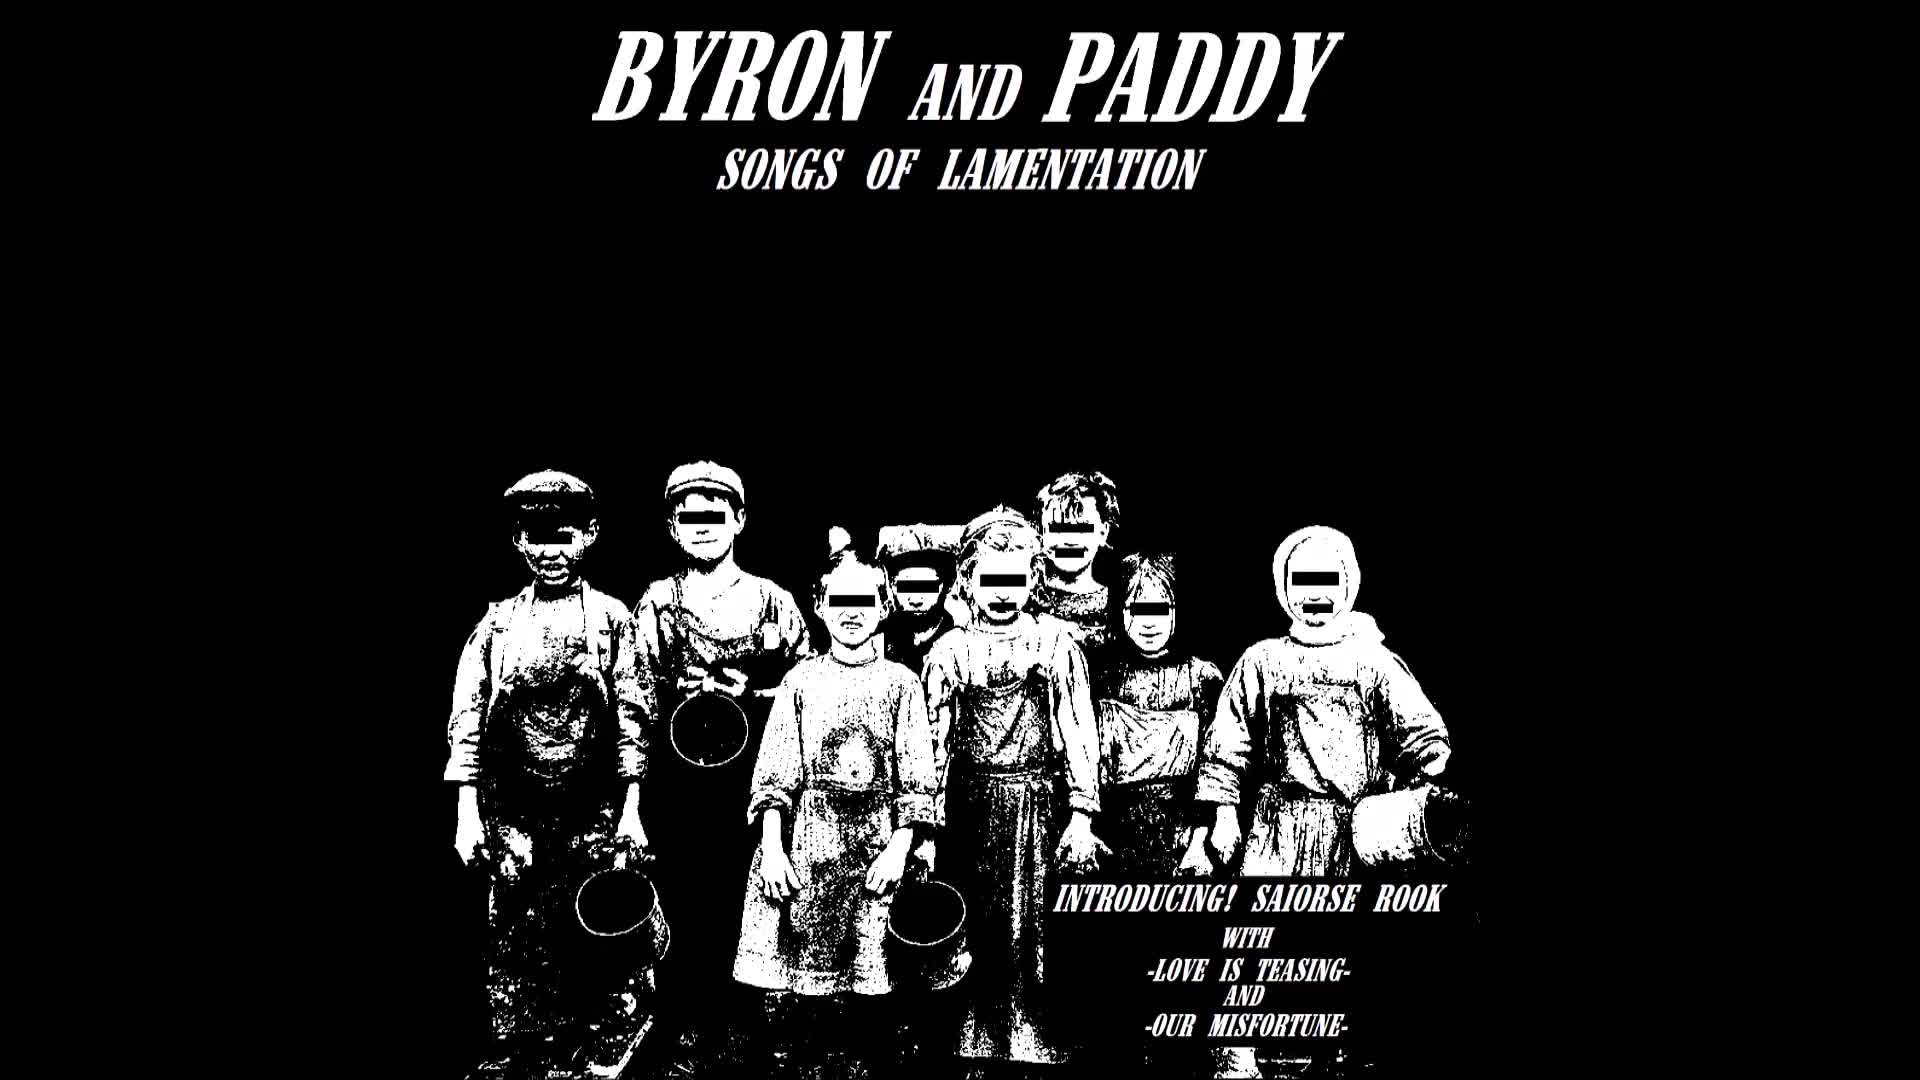 Red River Valley by Paddy Tarleton & Byron de la Vandal [Songs of Lamentation track 9]